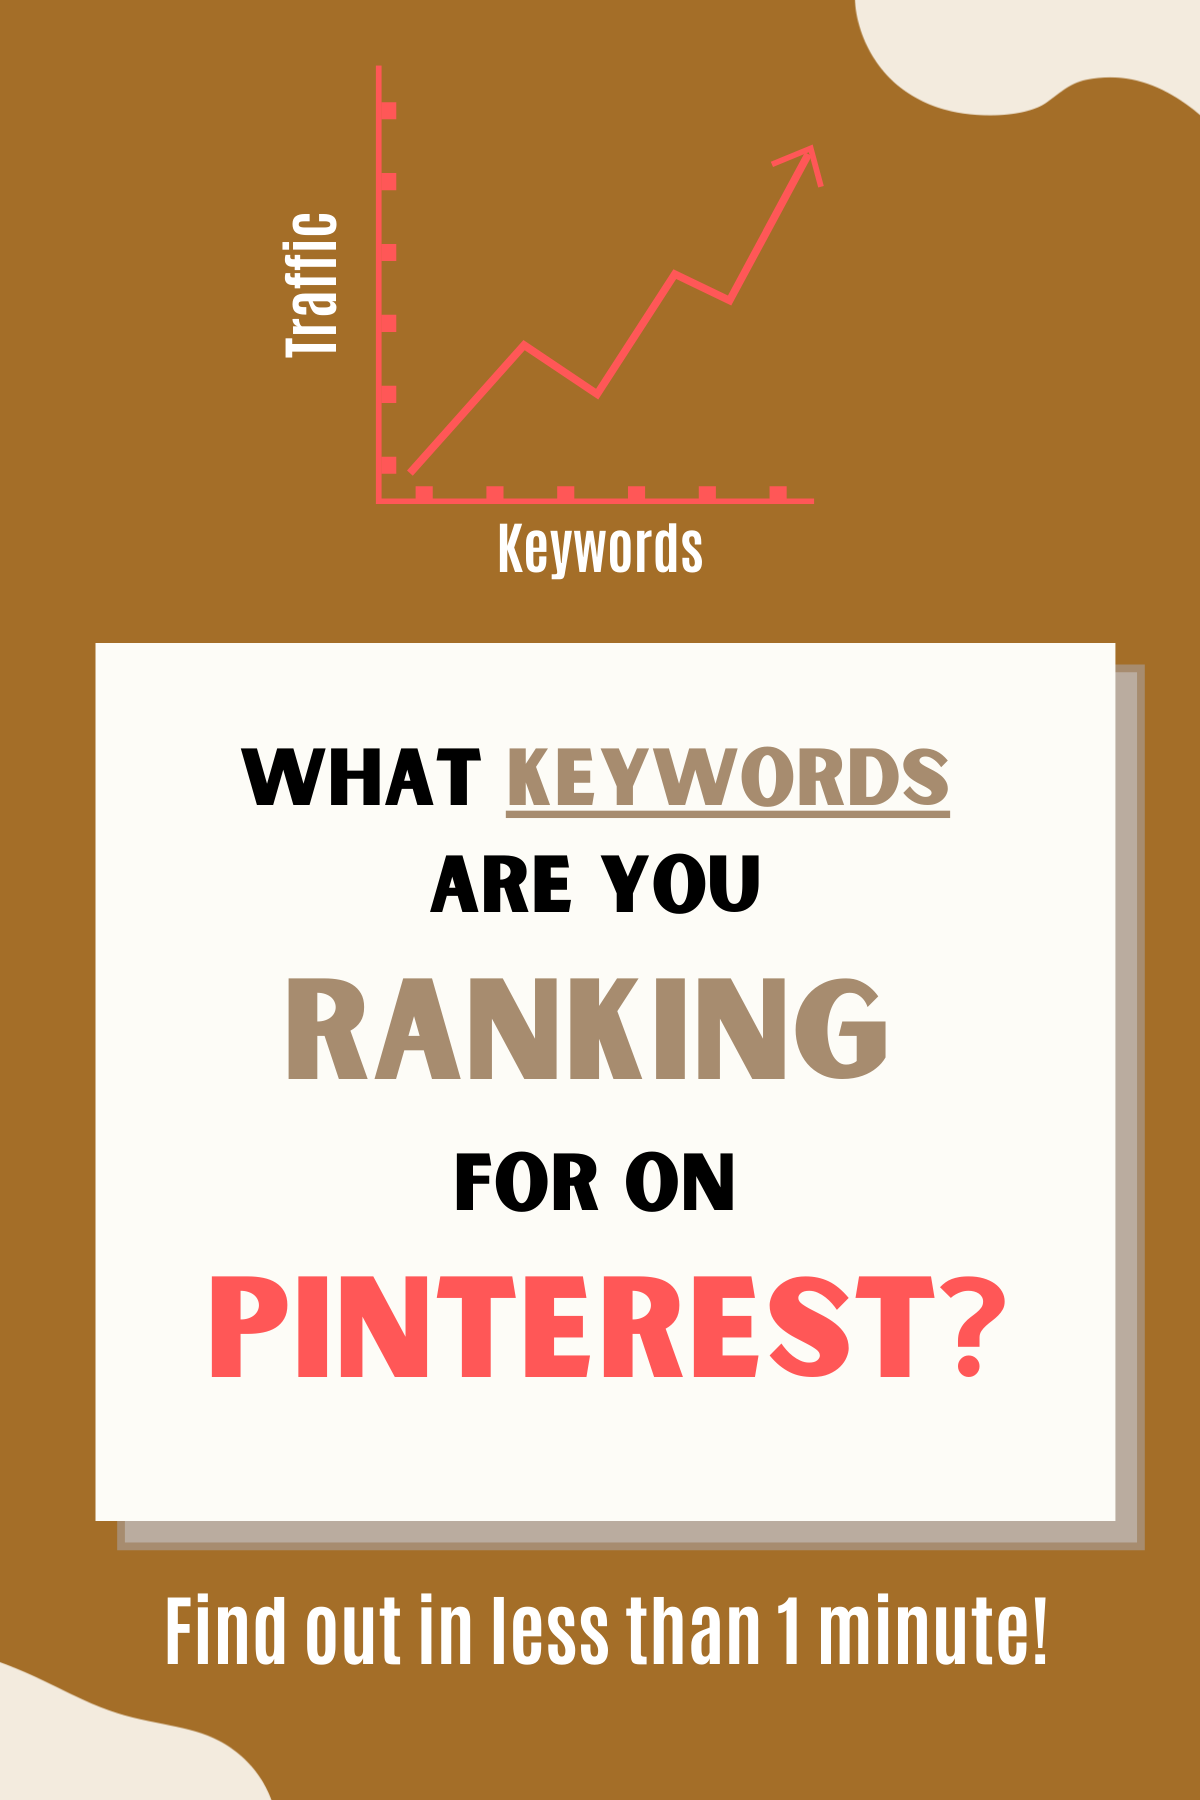 Pinterest Keyowrds 1 - How to Find the Keywords You Rank for on Pinterest